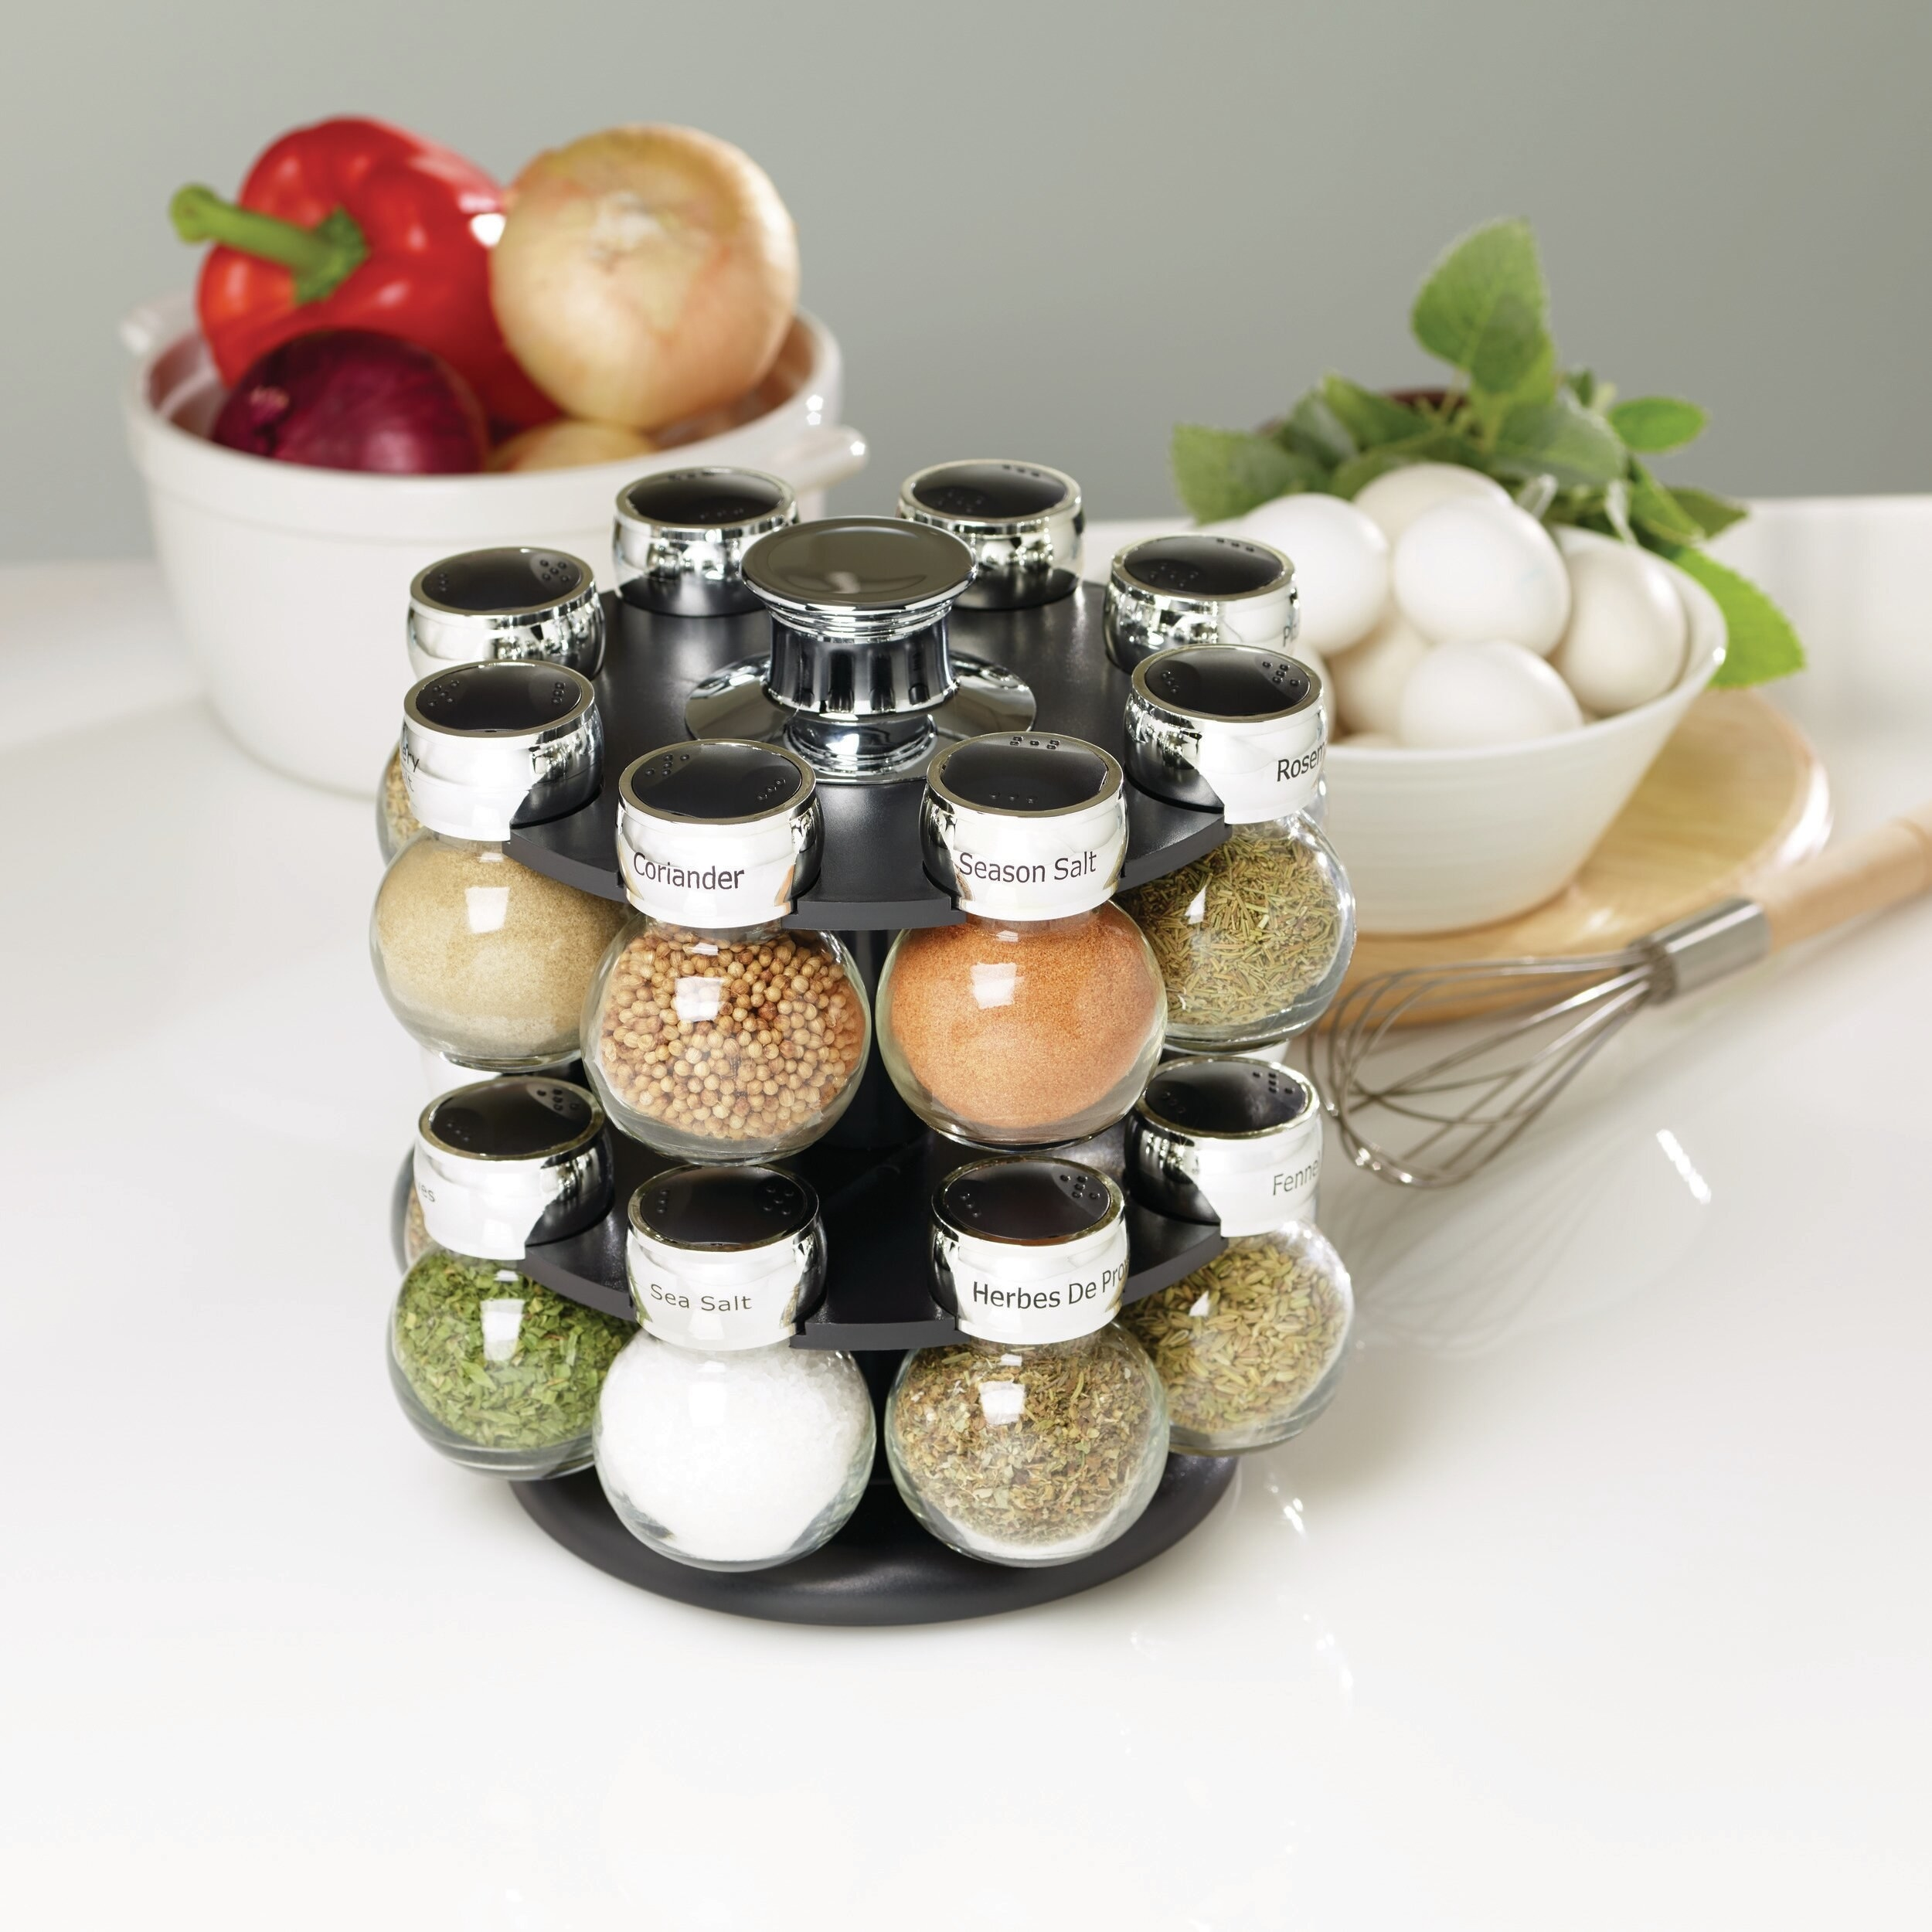 Spice rack sitting on counter